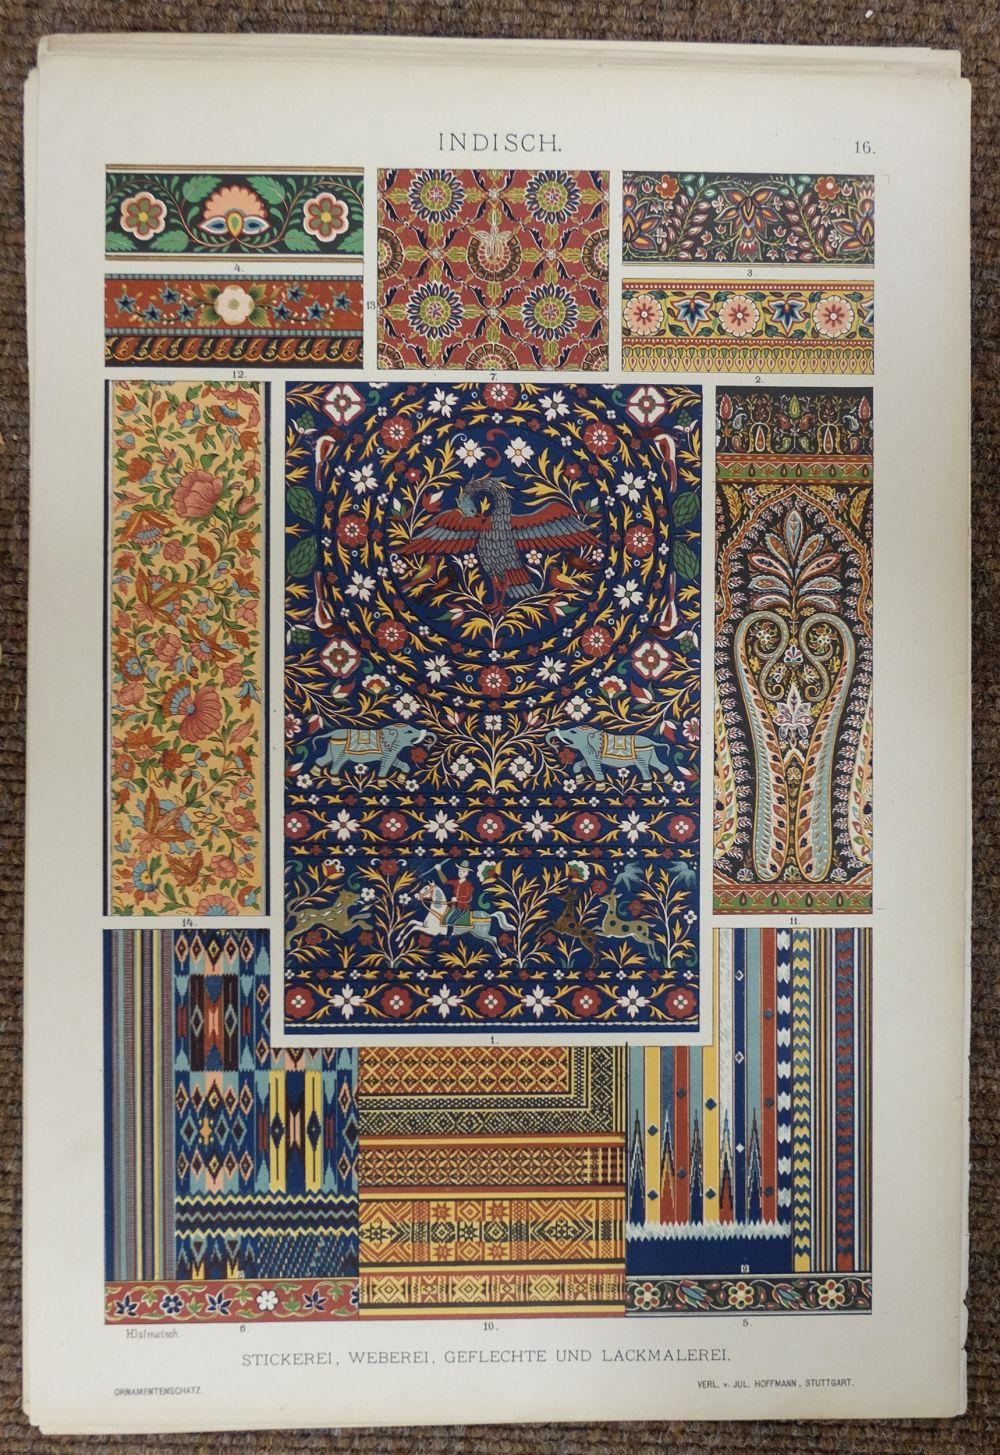 * Interiors and Design. A mixed collection of approximately 750 prints, mostly 20th century